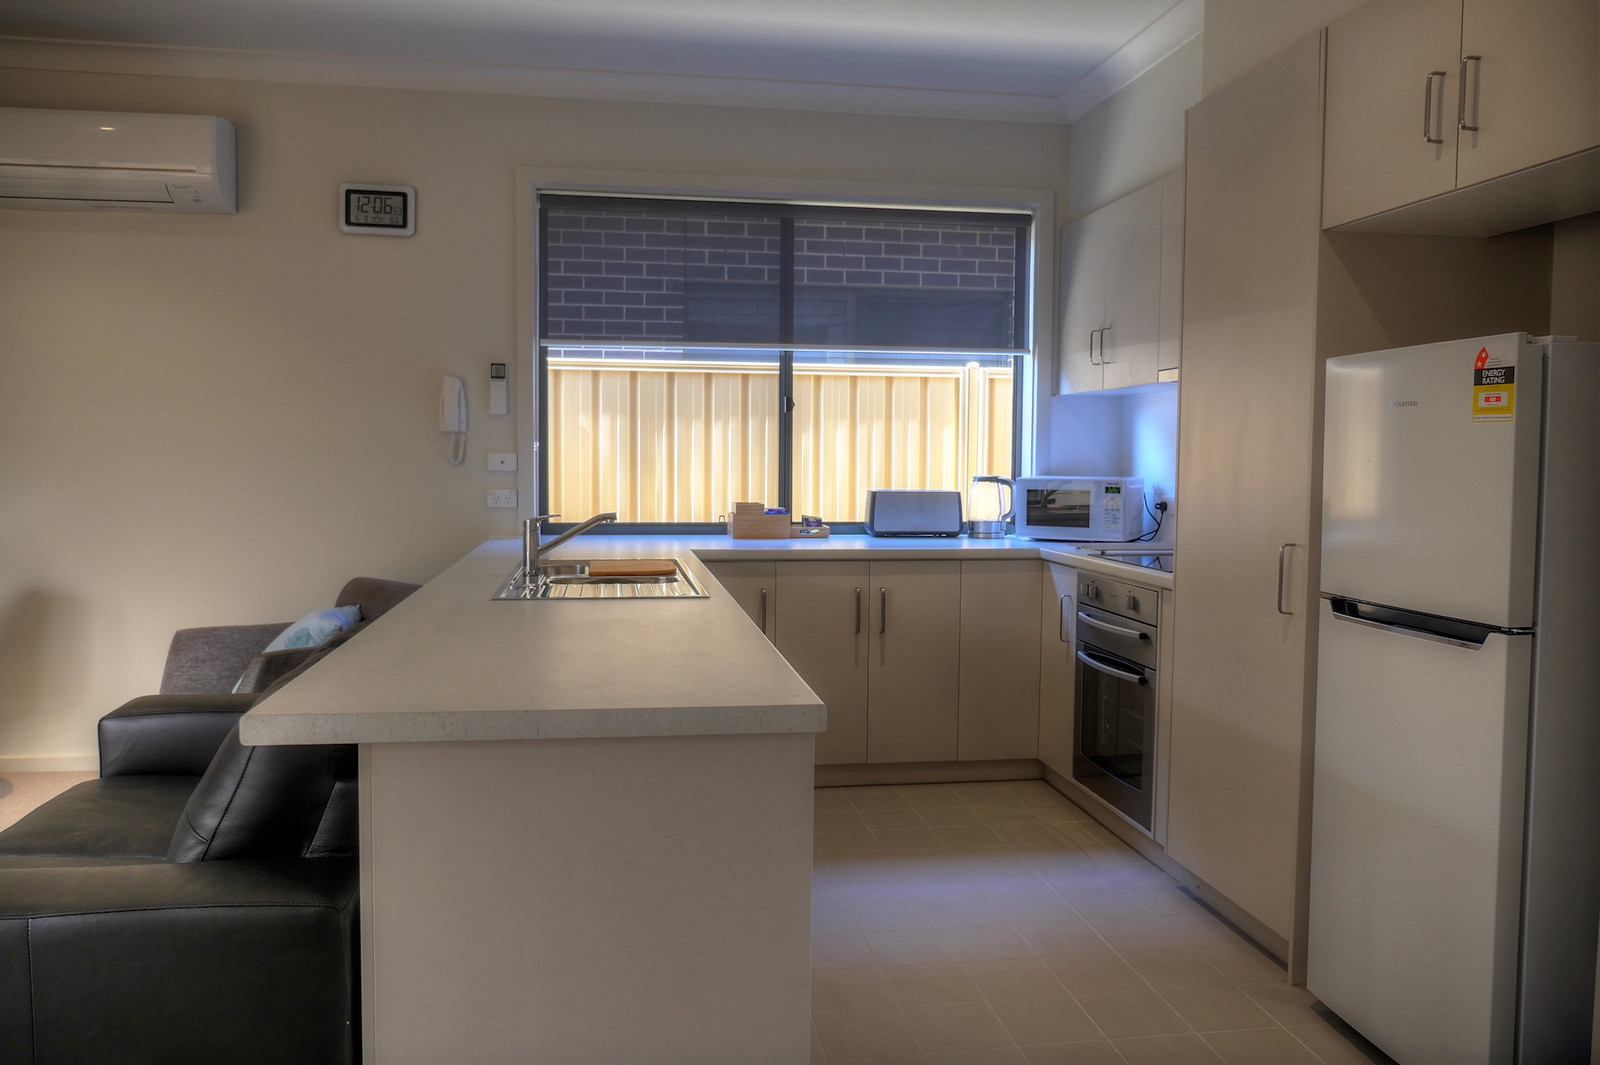 2 bedroom-kitchen